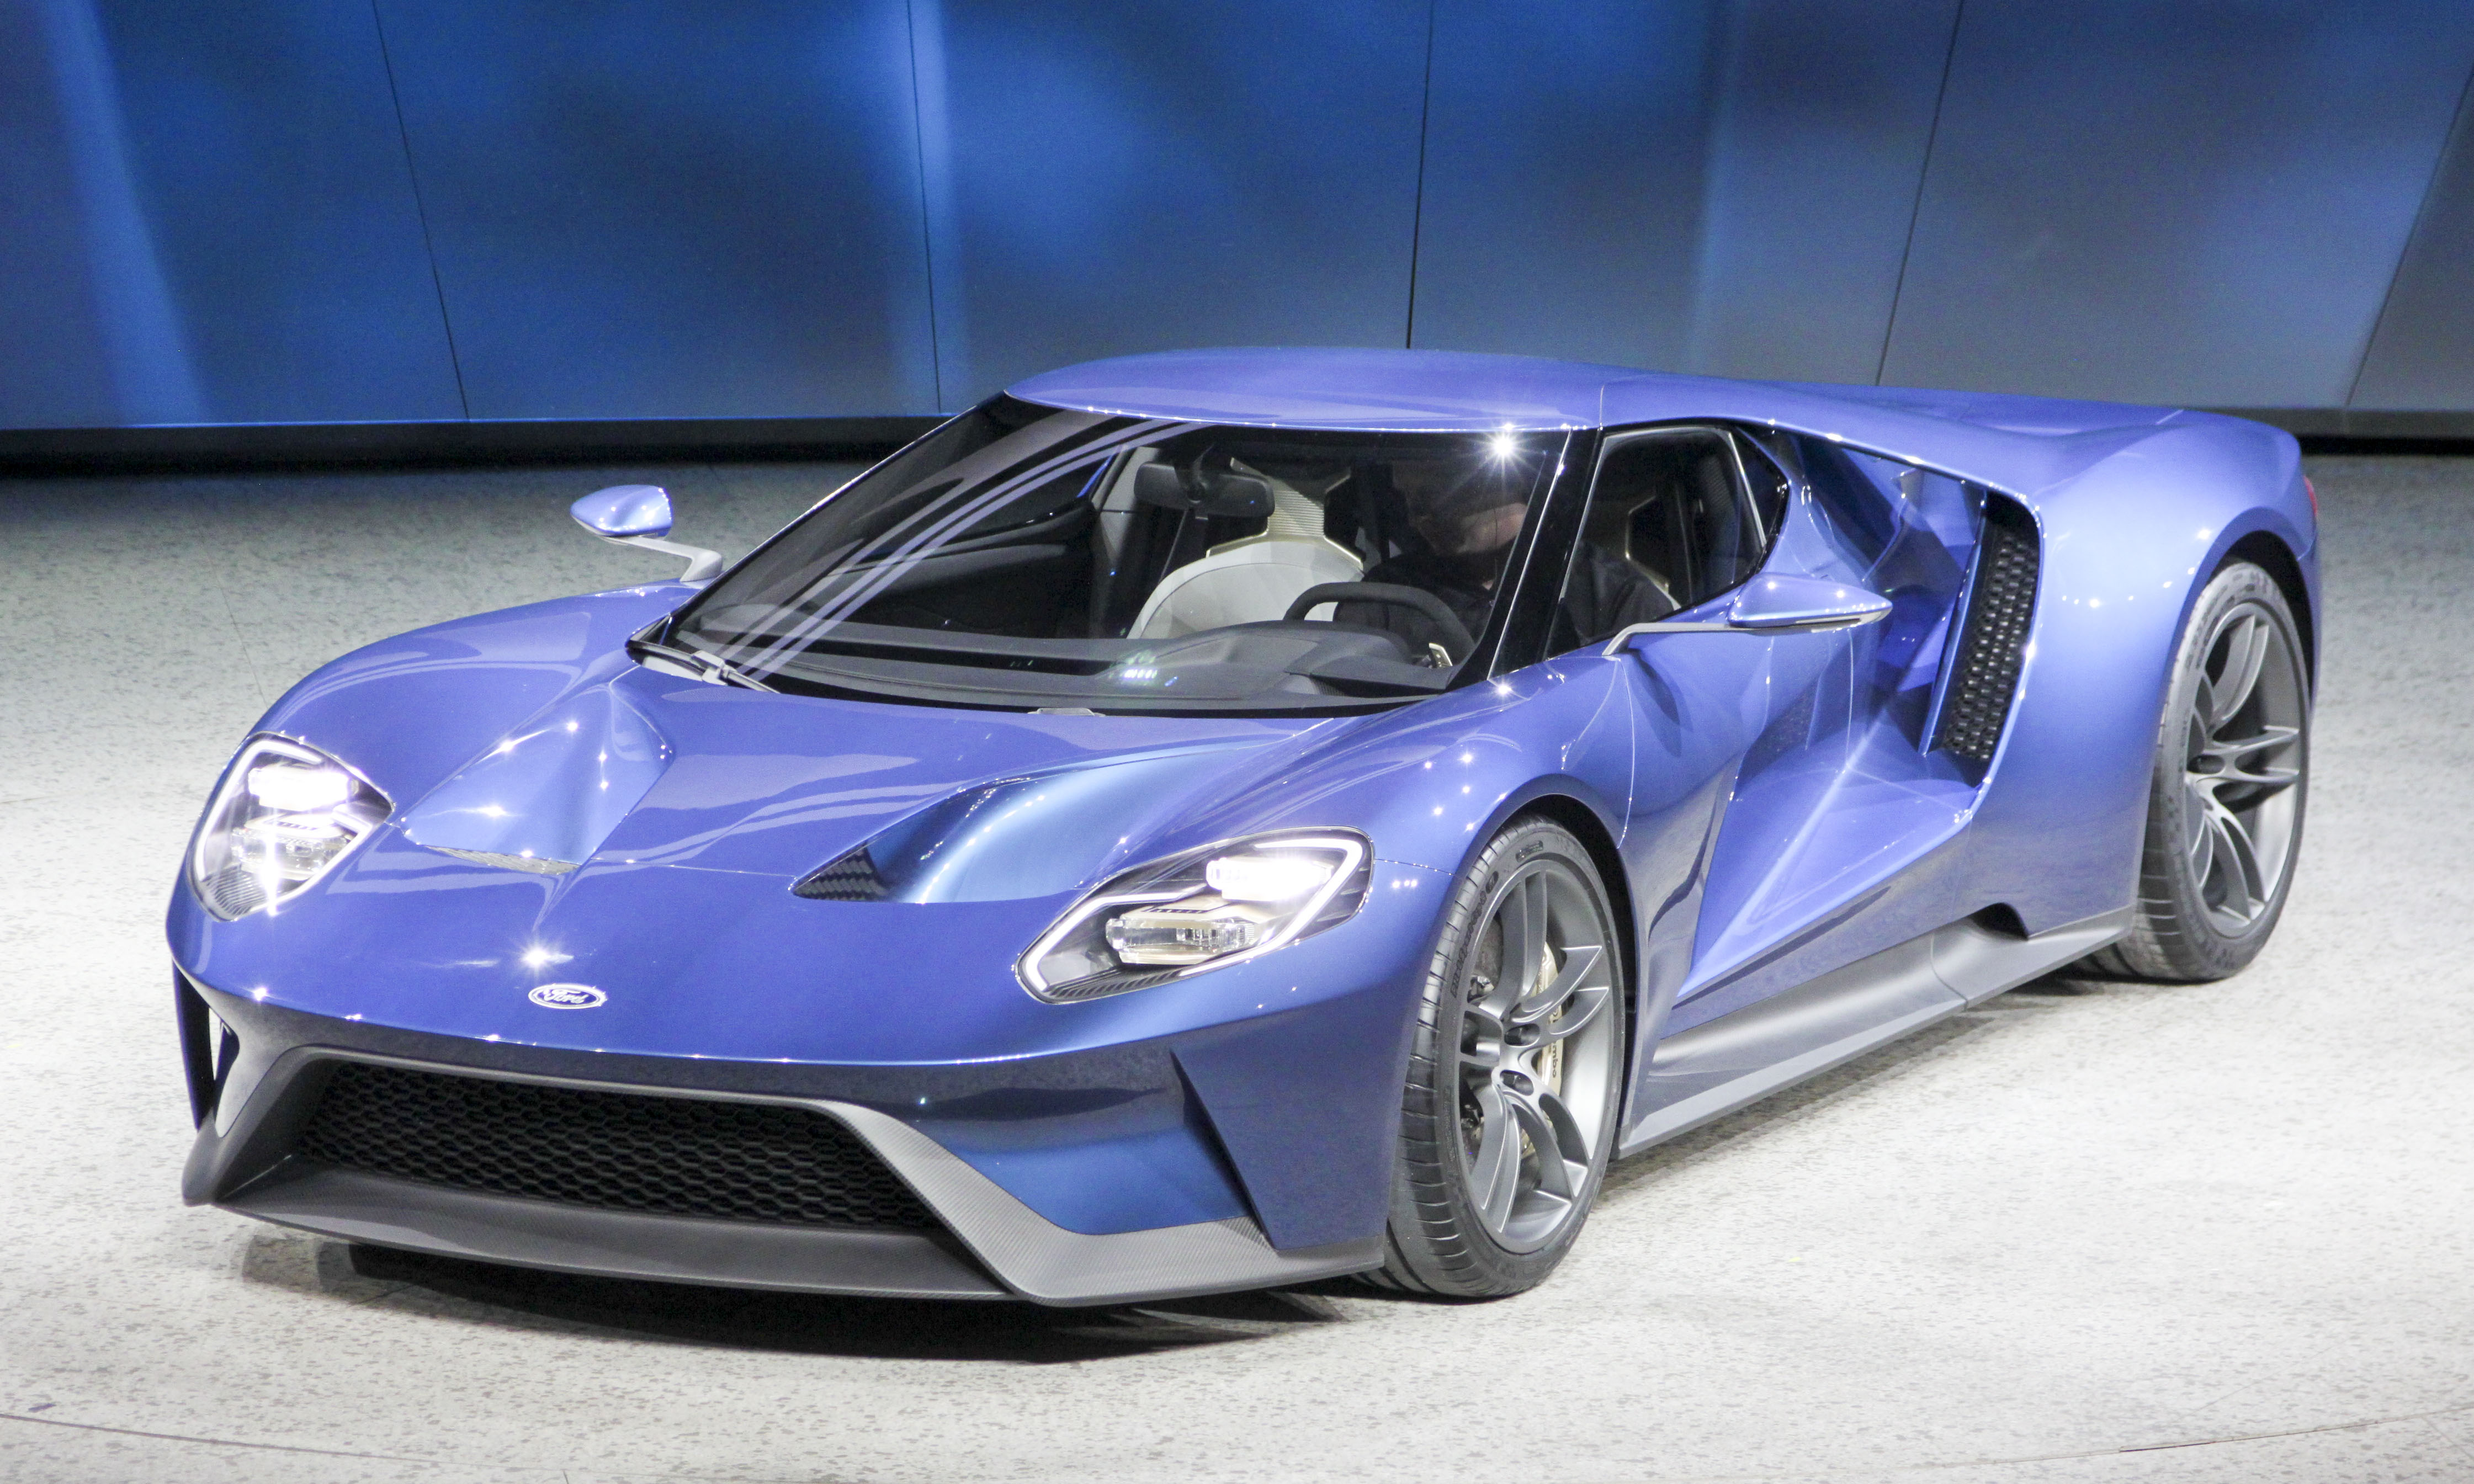 Ford GT C Perry Stern